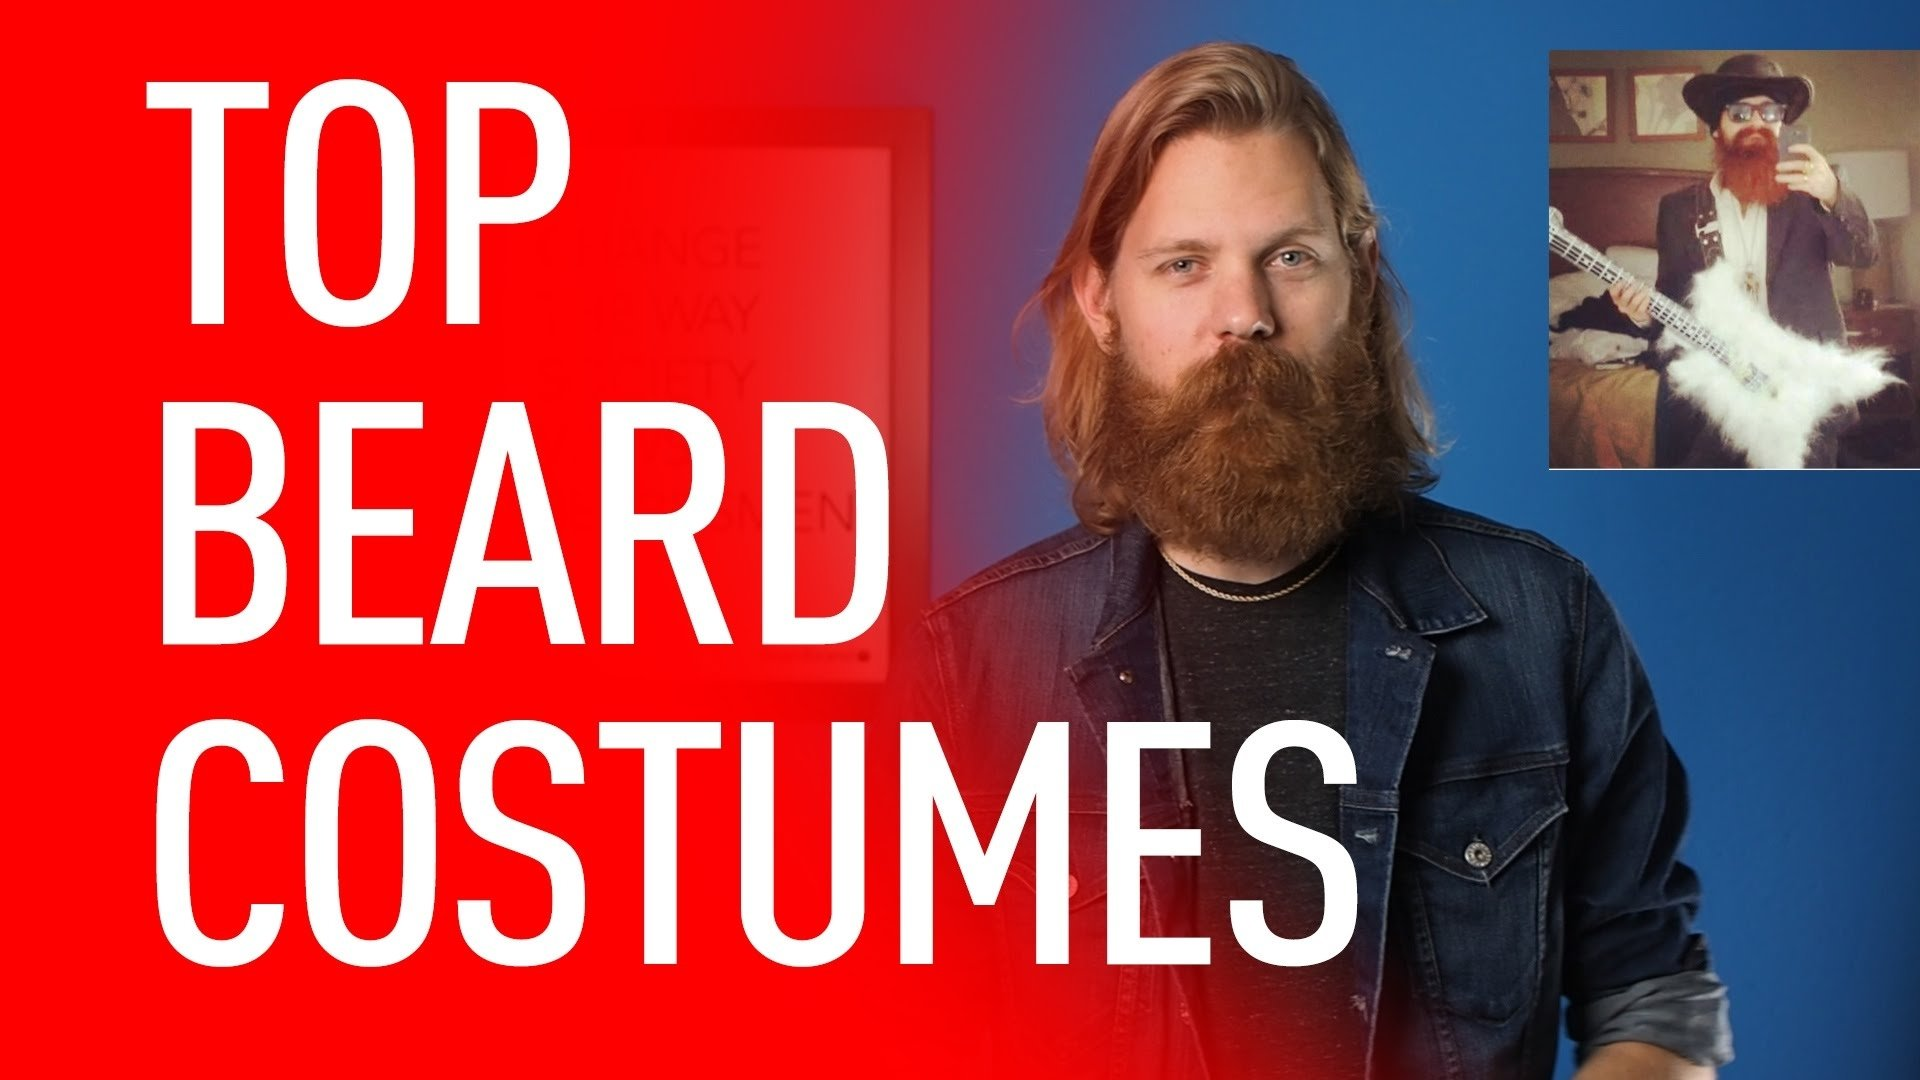 10 Stylish Halloween Costume Ideas For Bearded Men ten best bearded halloween costumes eric bandholz youtube 3 2020